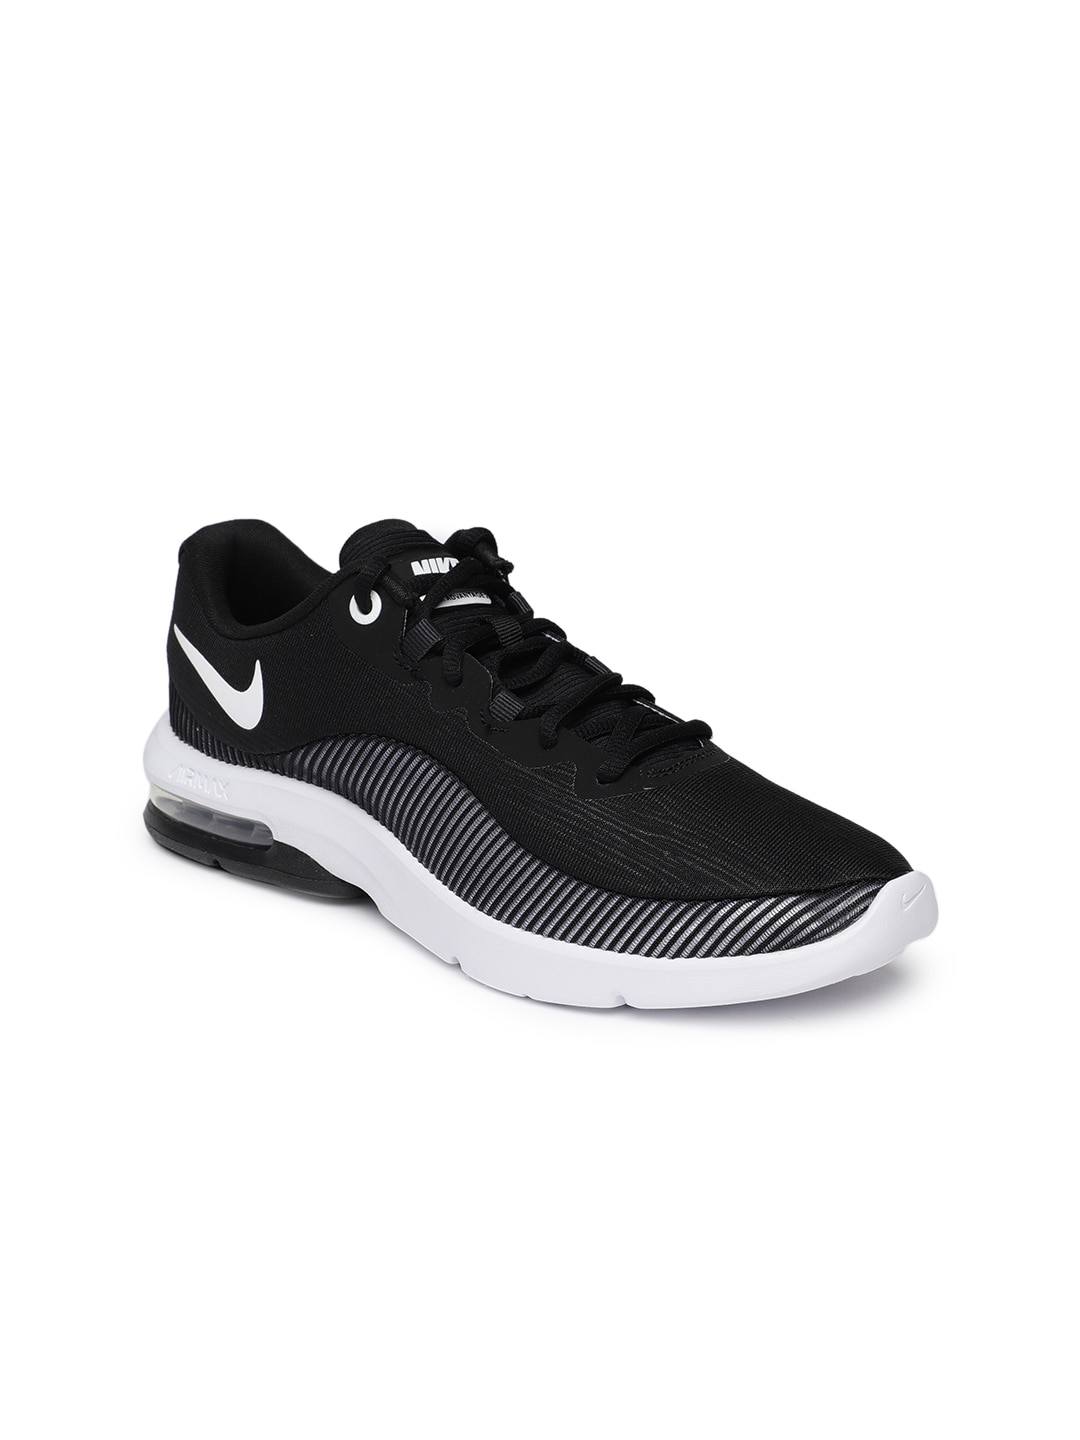 3cc79aa69f93 Nike Air Max - Buy Nike Air Max Shoes